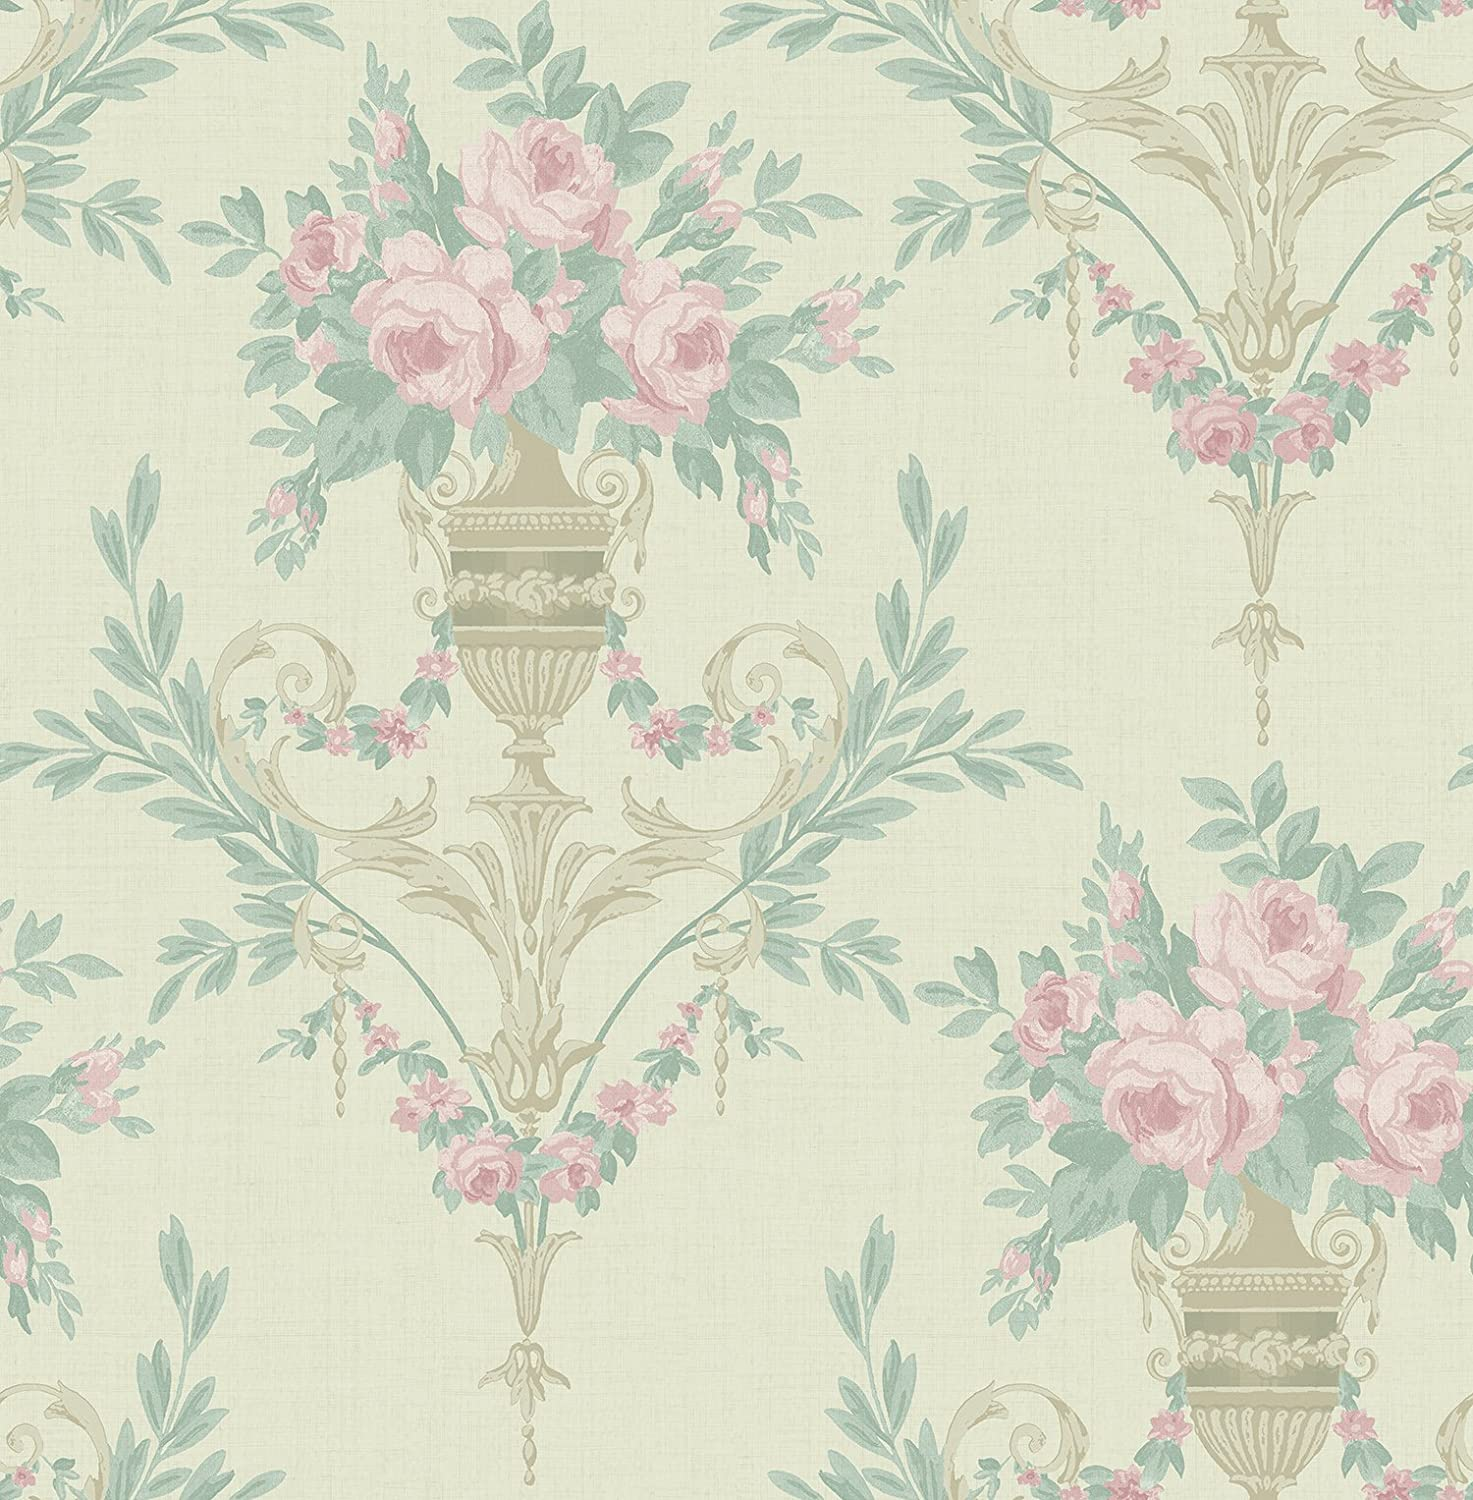 Floral Vintage Wallpaper Tumblr Vintage Floral Backgrounds